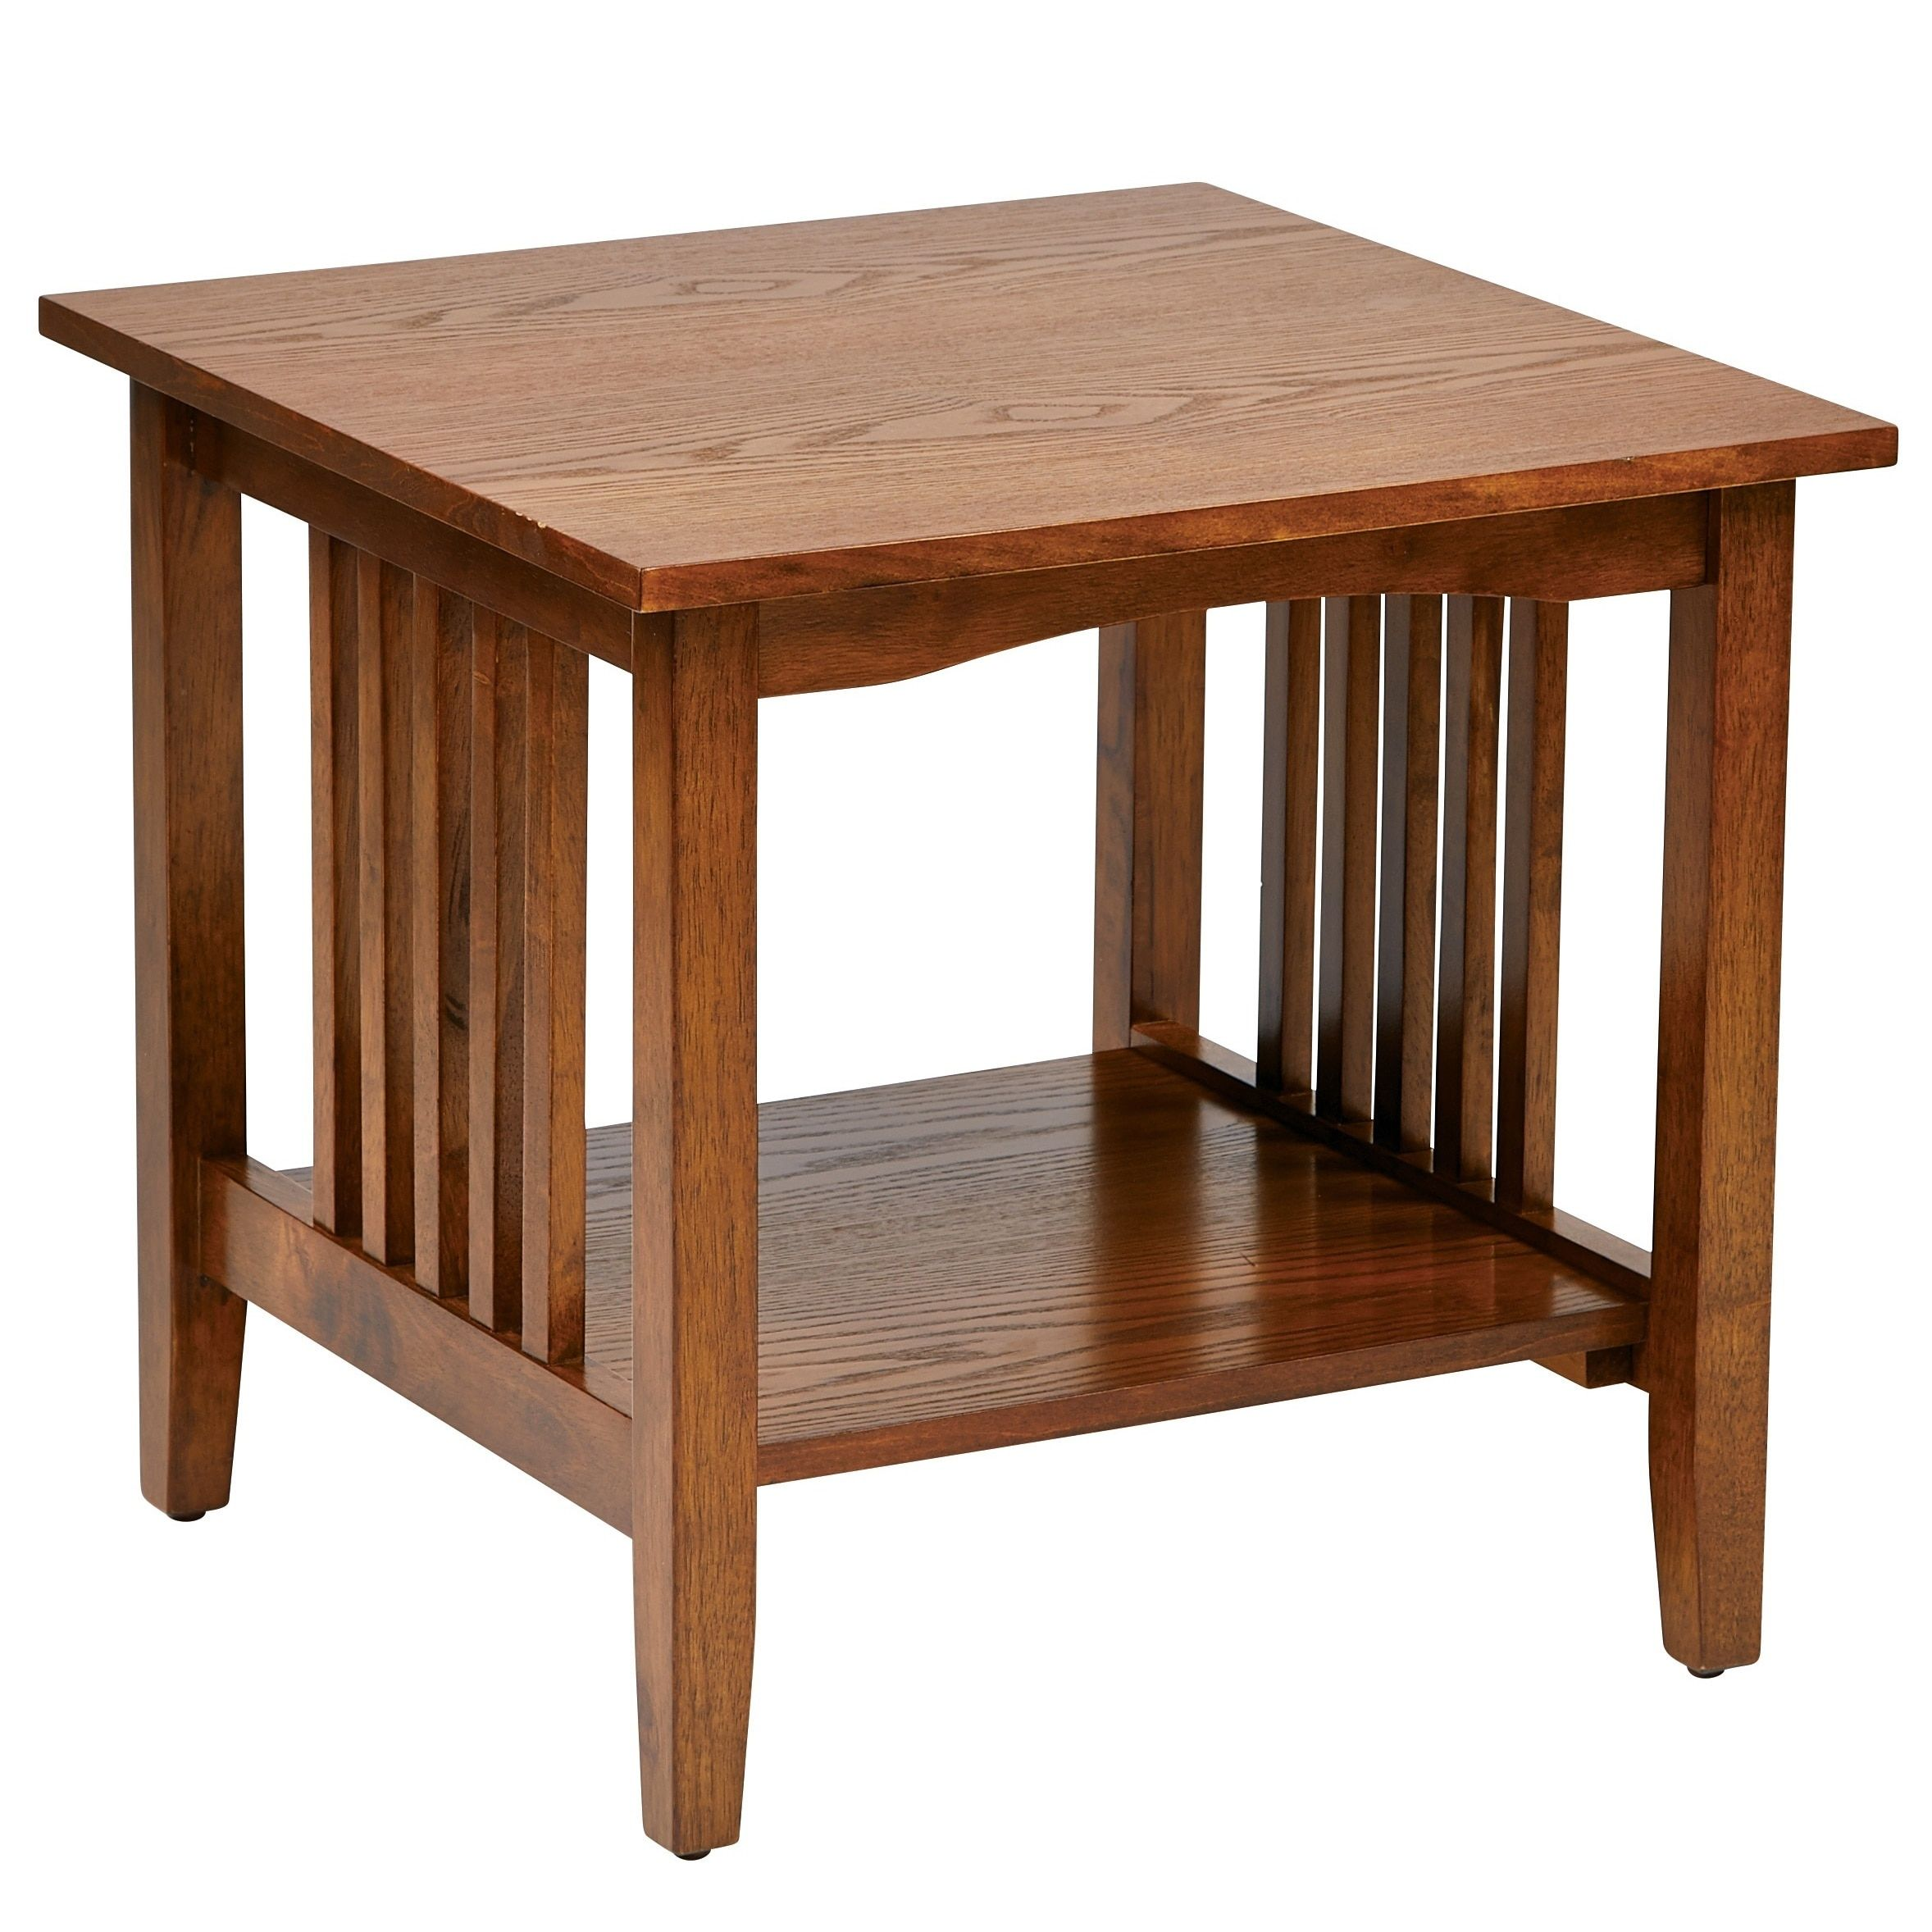 Overstock Com Online Shopping Bedding Furniture Electronics Jewelry Clothing More Wood End Tables Osp Home Furnishings Mission Furniture